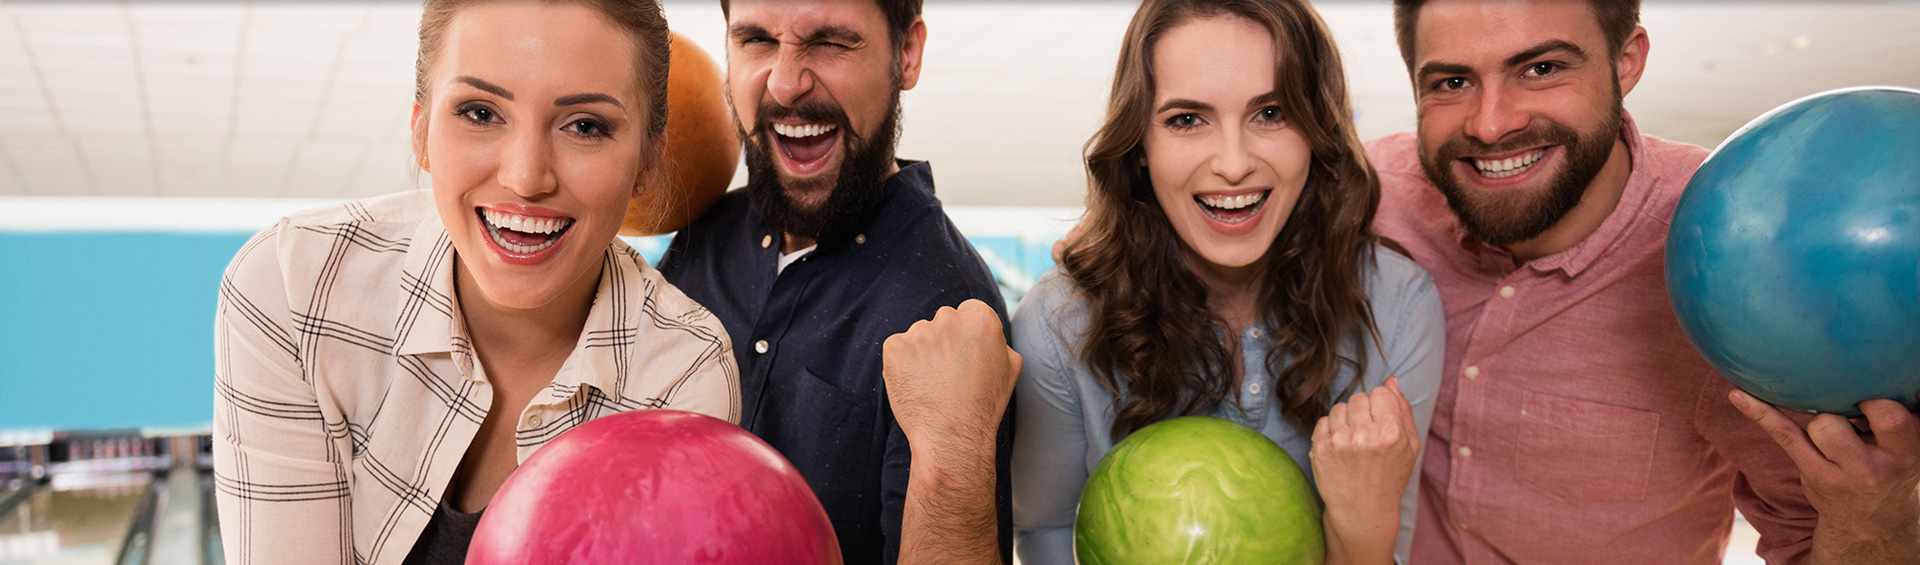 Banner Image bowling adults